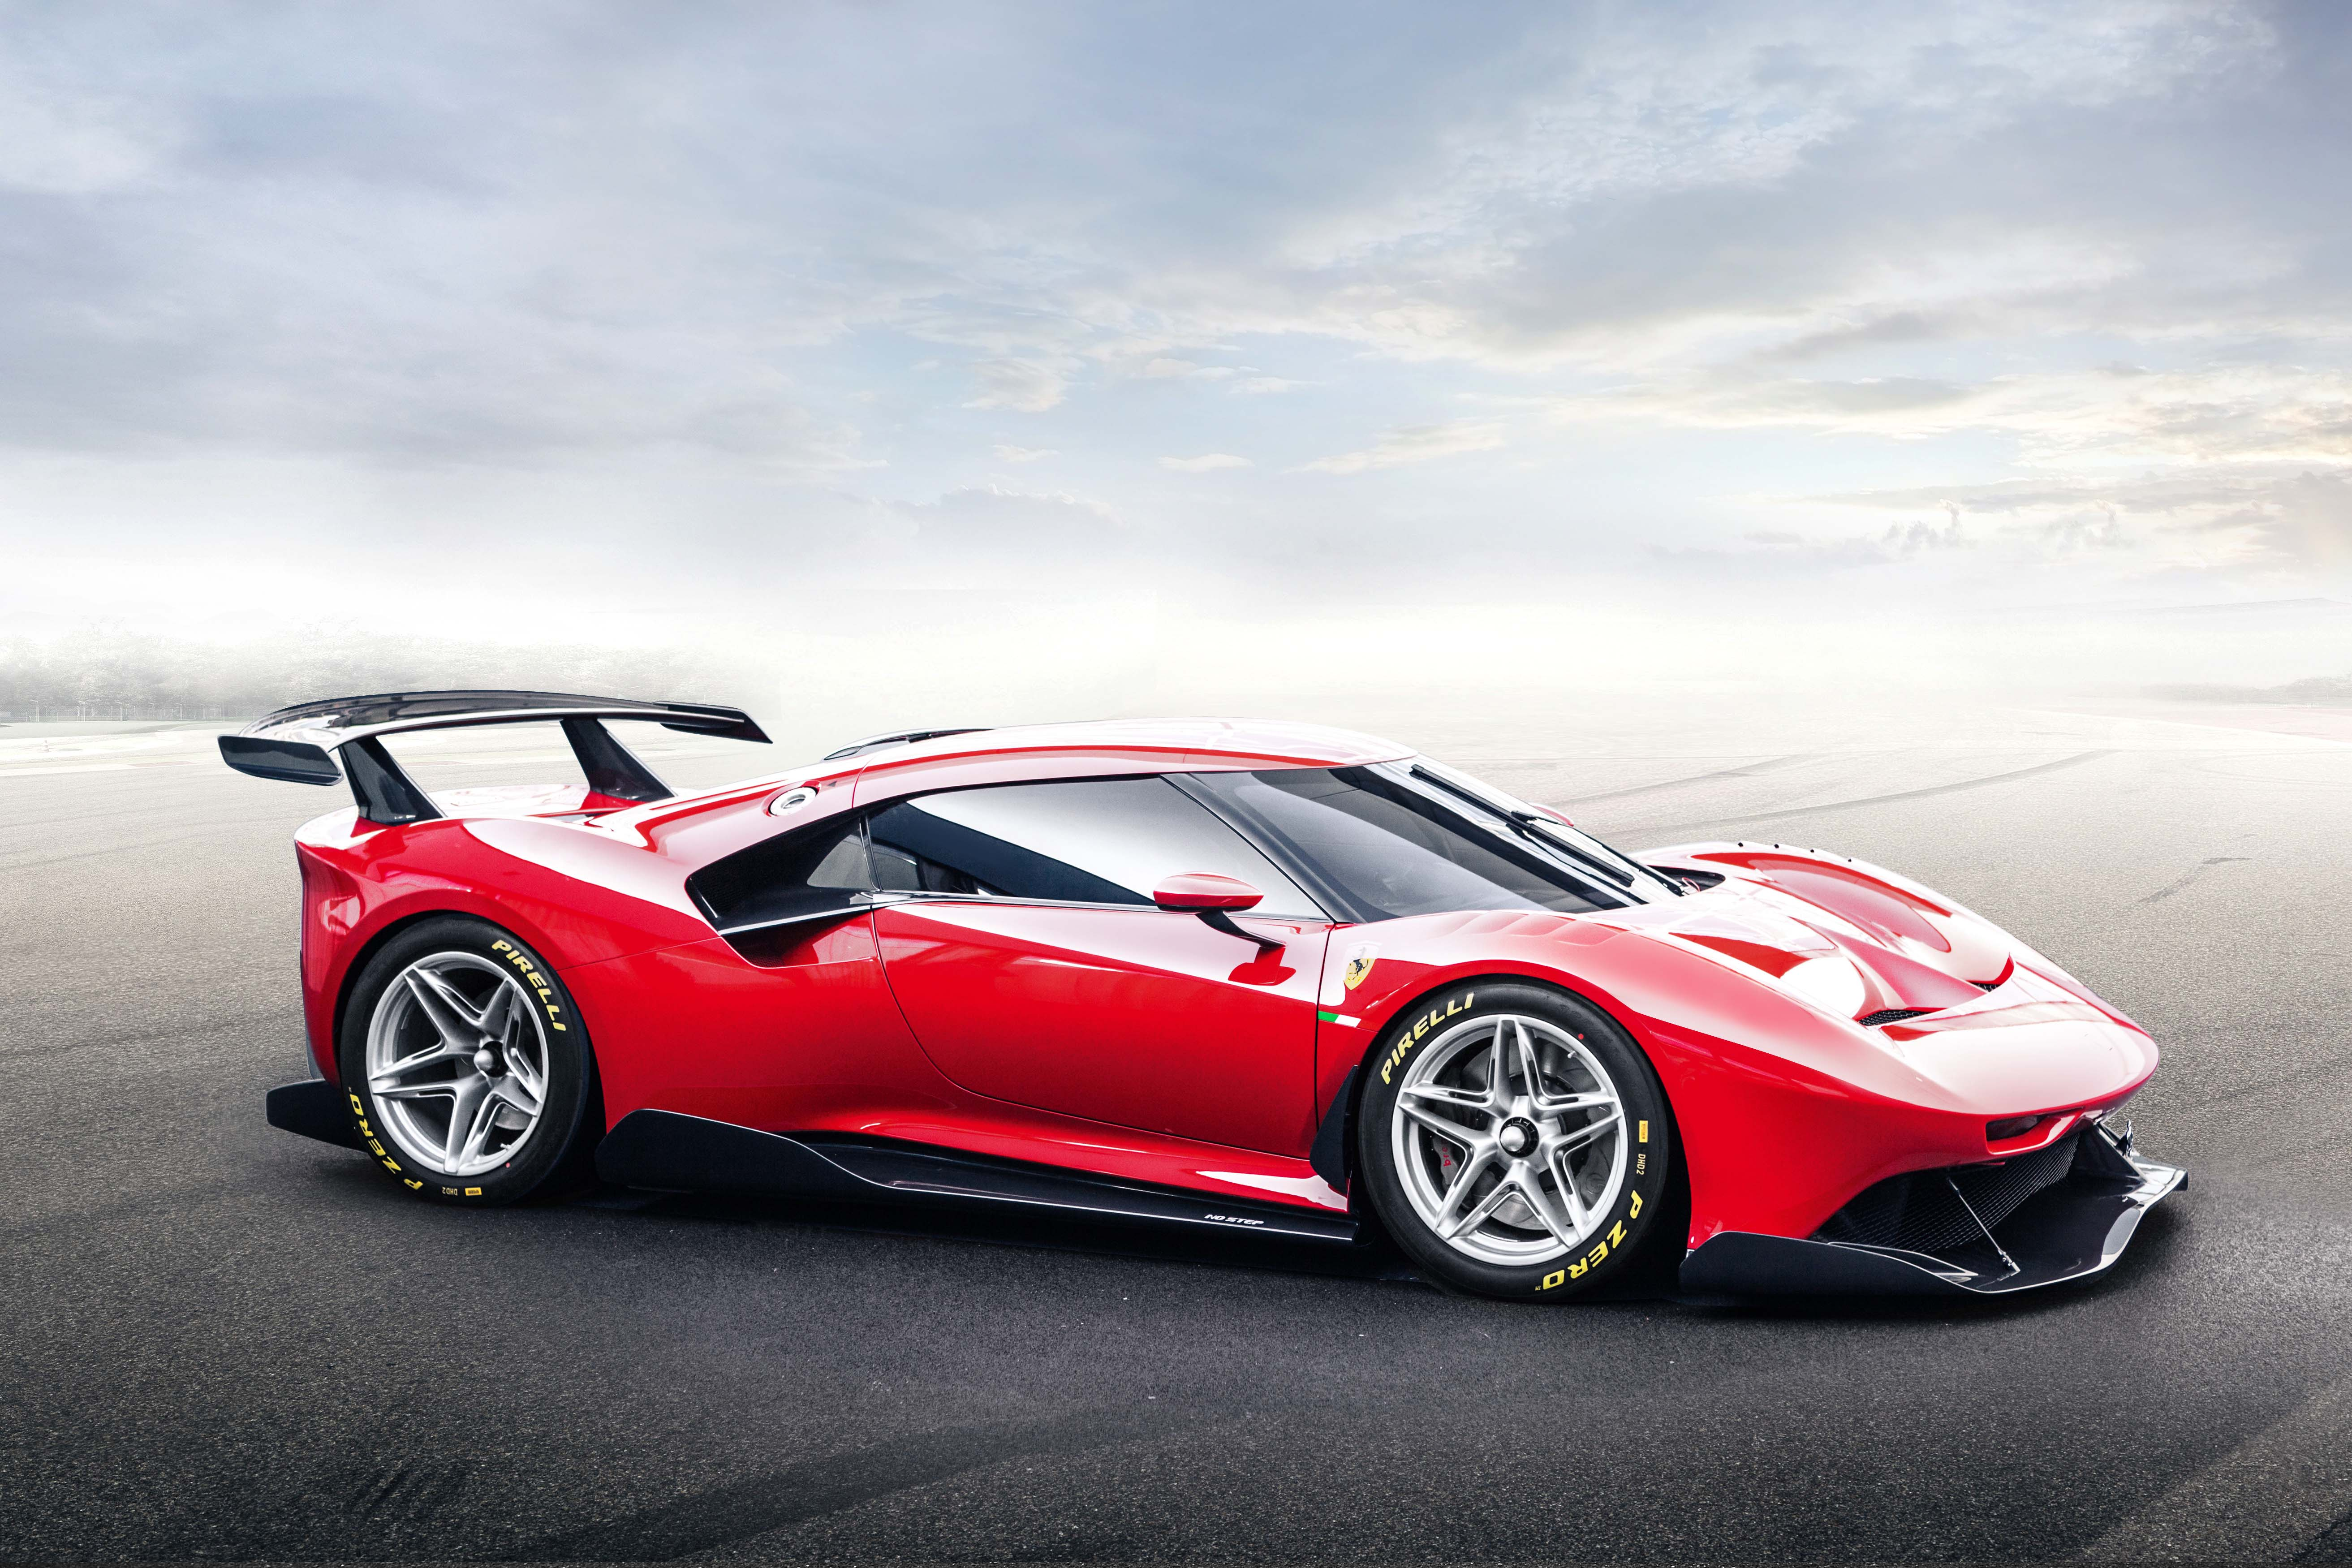 Ferrari P80/C Latest News, Reviews, Specifications, Prices